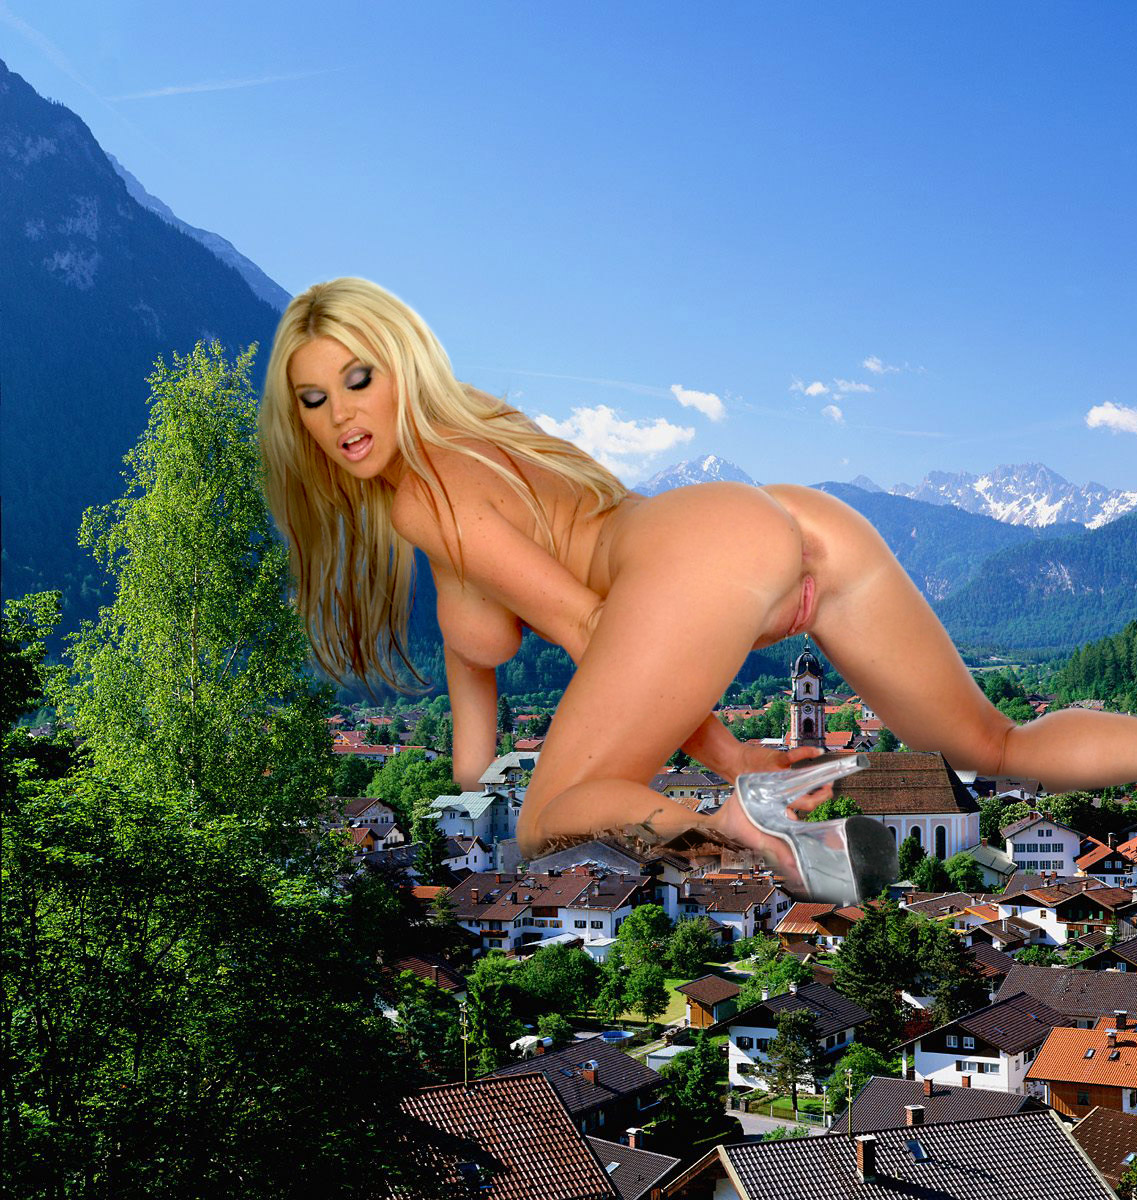 Giantess nude in the city adult images